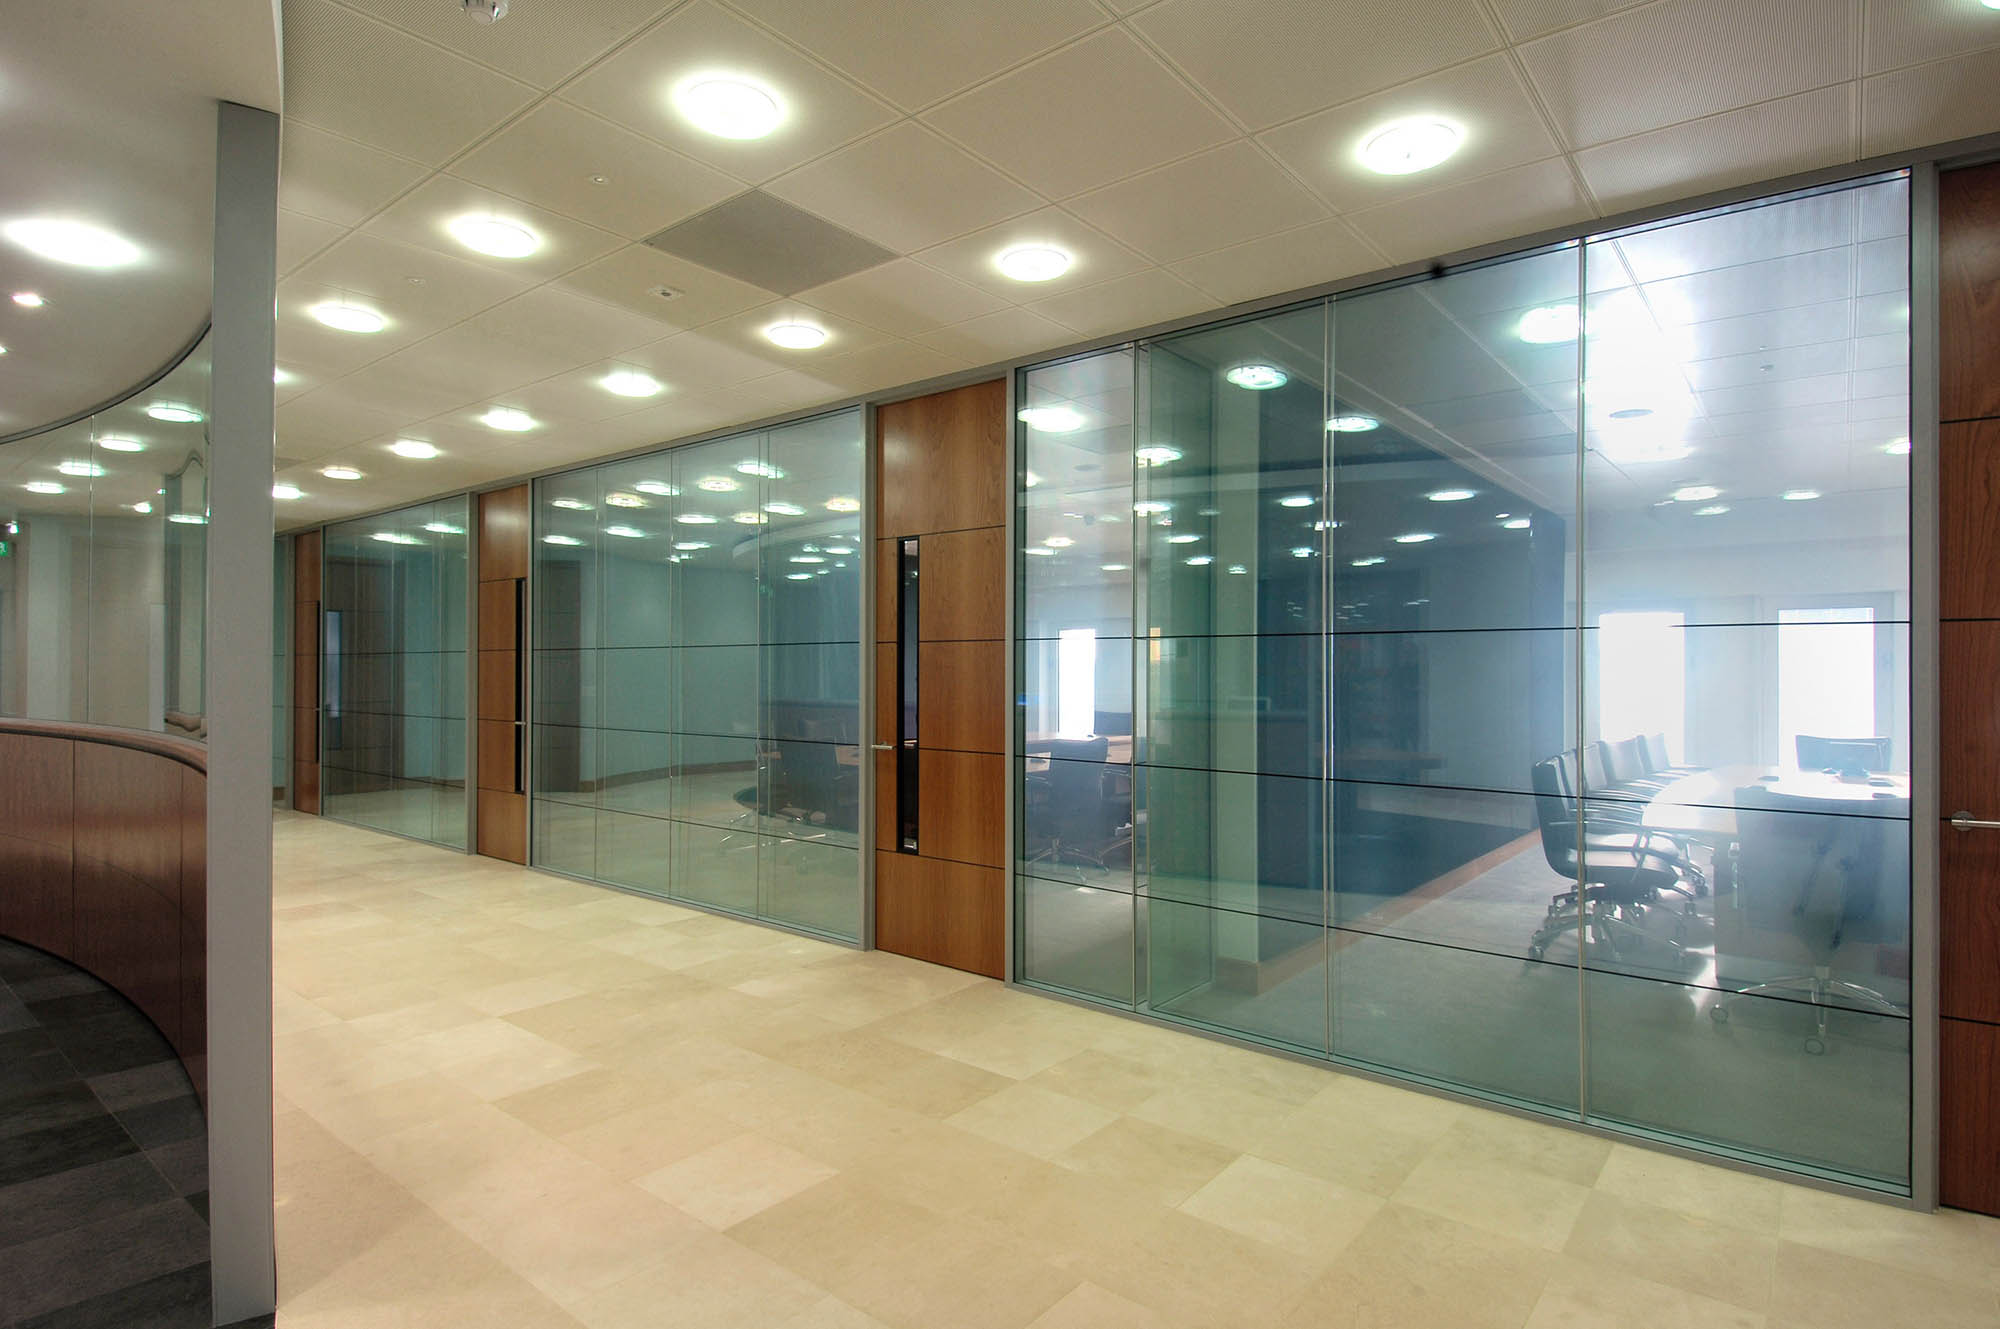 Office glass walls glass wall systems glass partition walls Interior glass partition systems